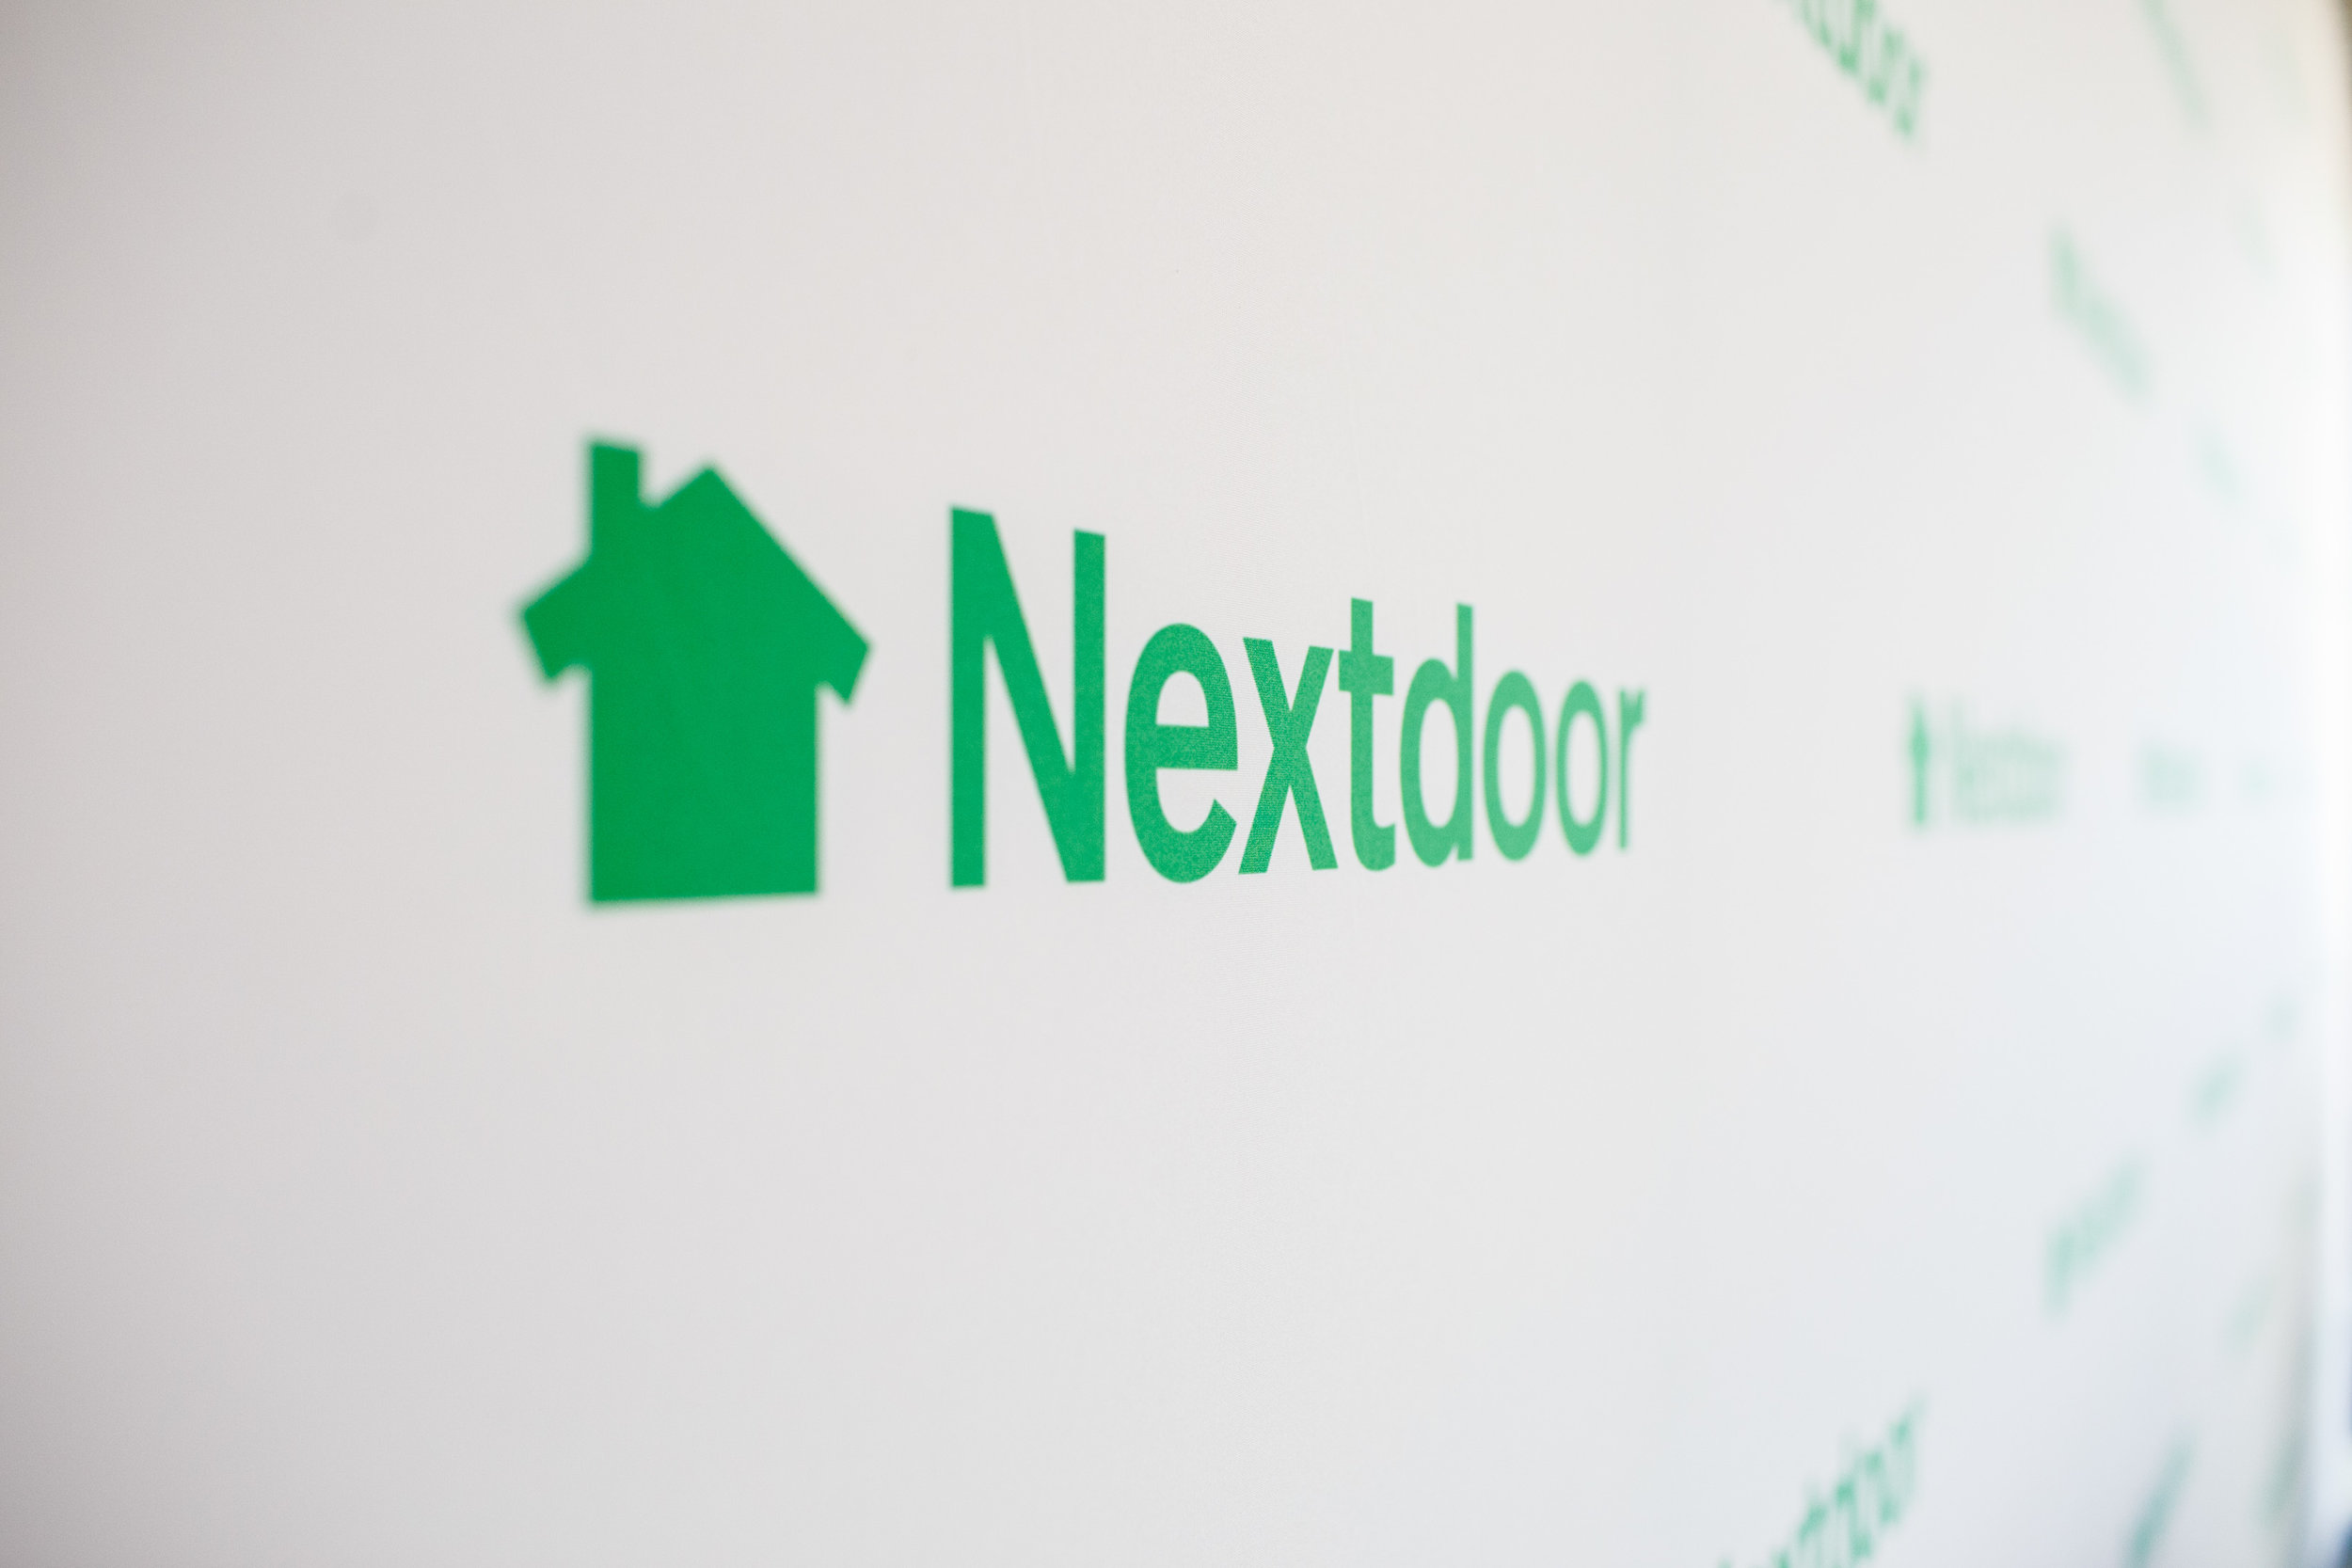 Nextdoor_MayorSummit_8-1-18-1-26.jpg